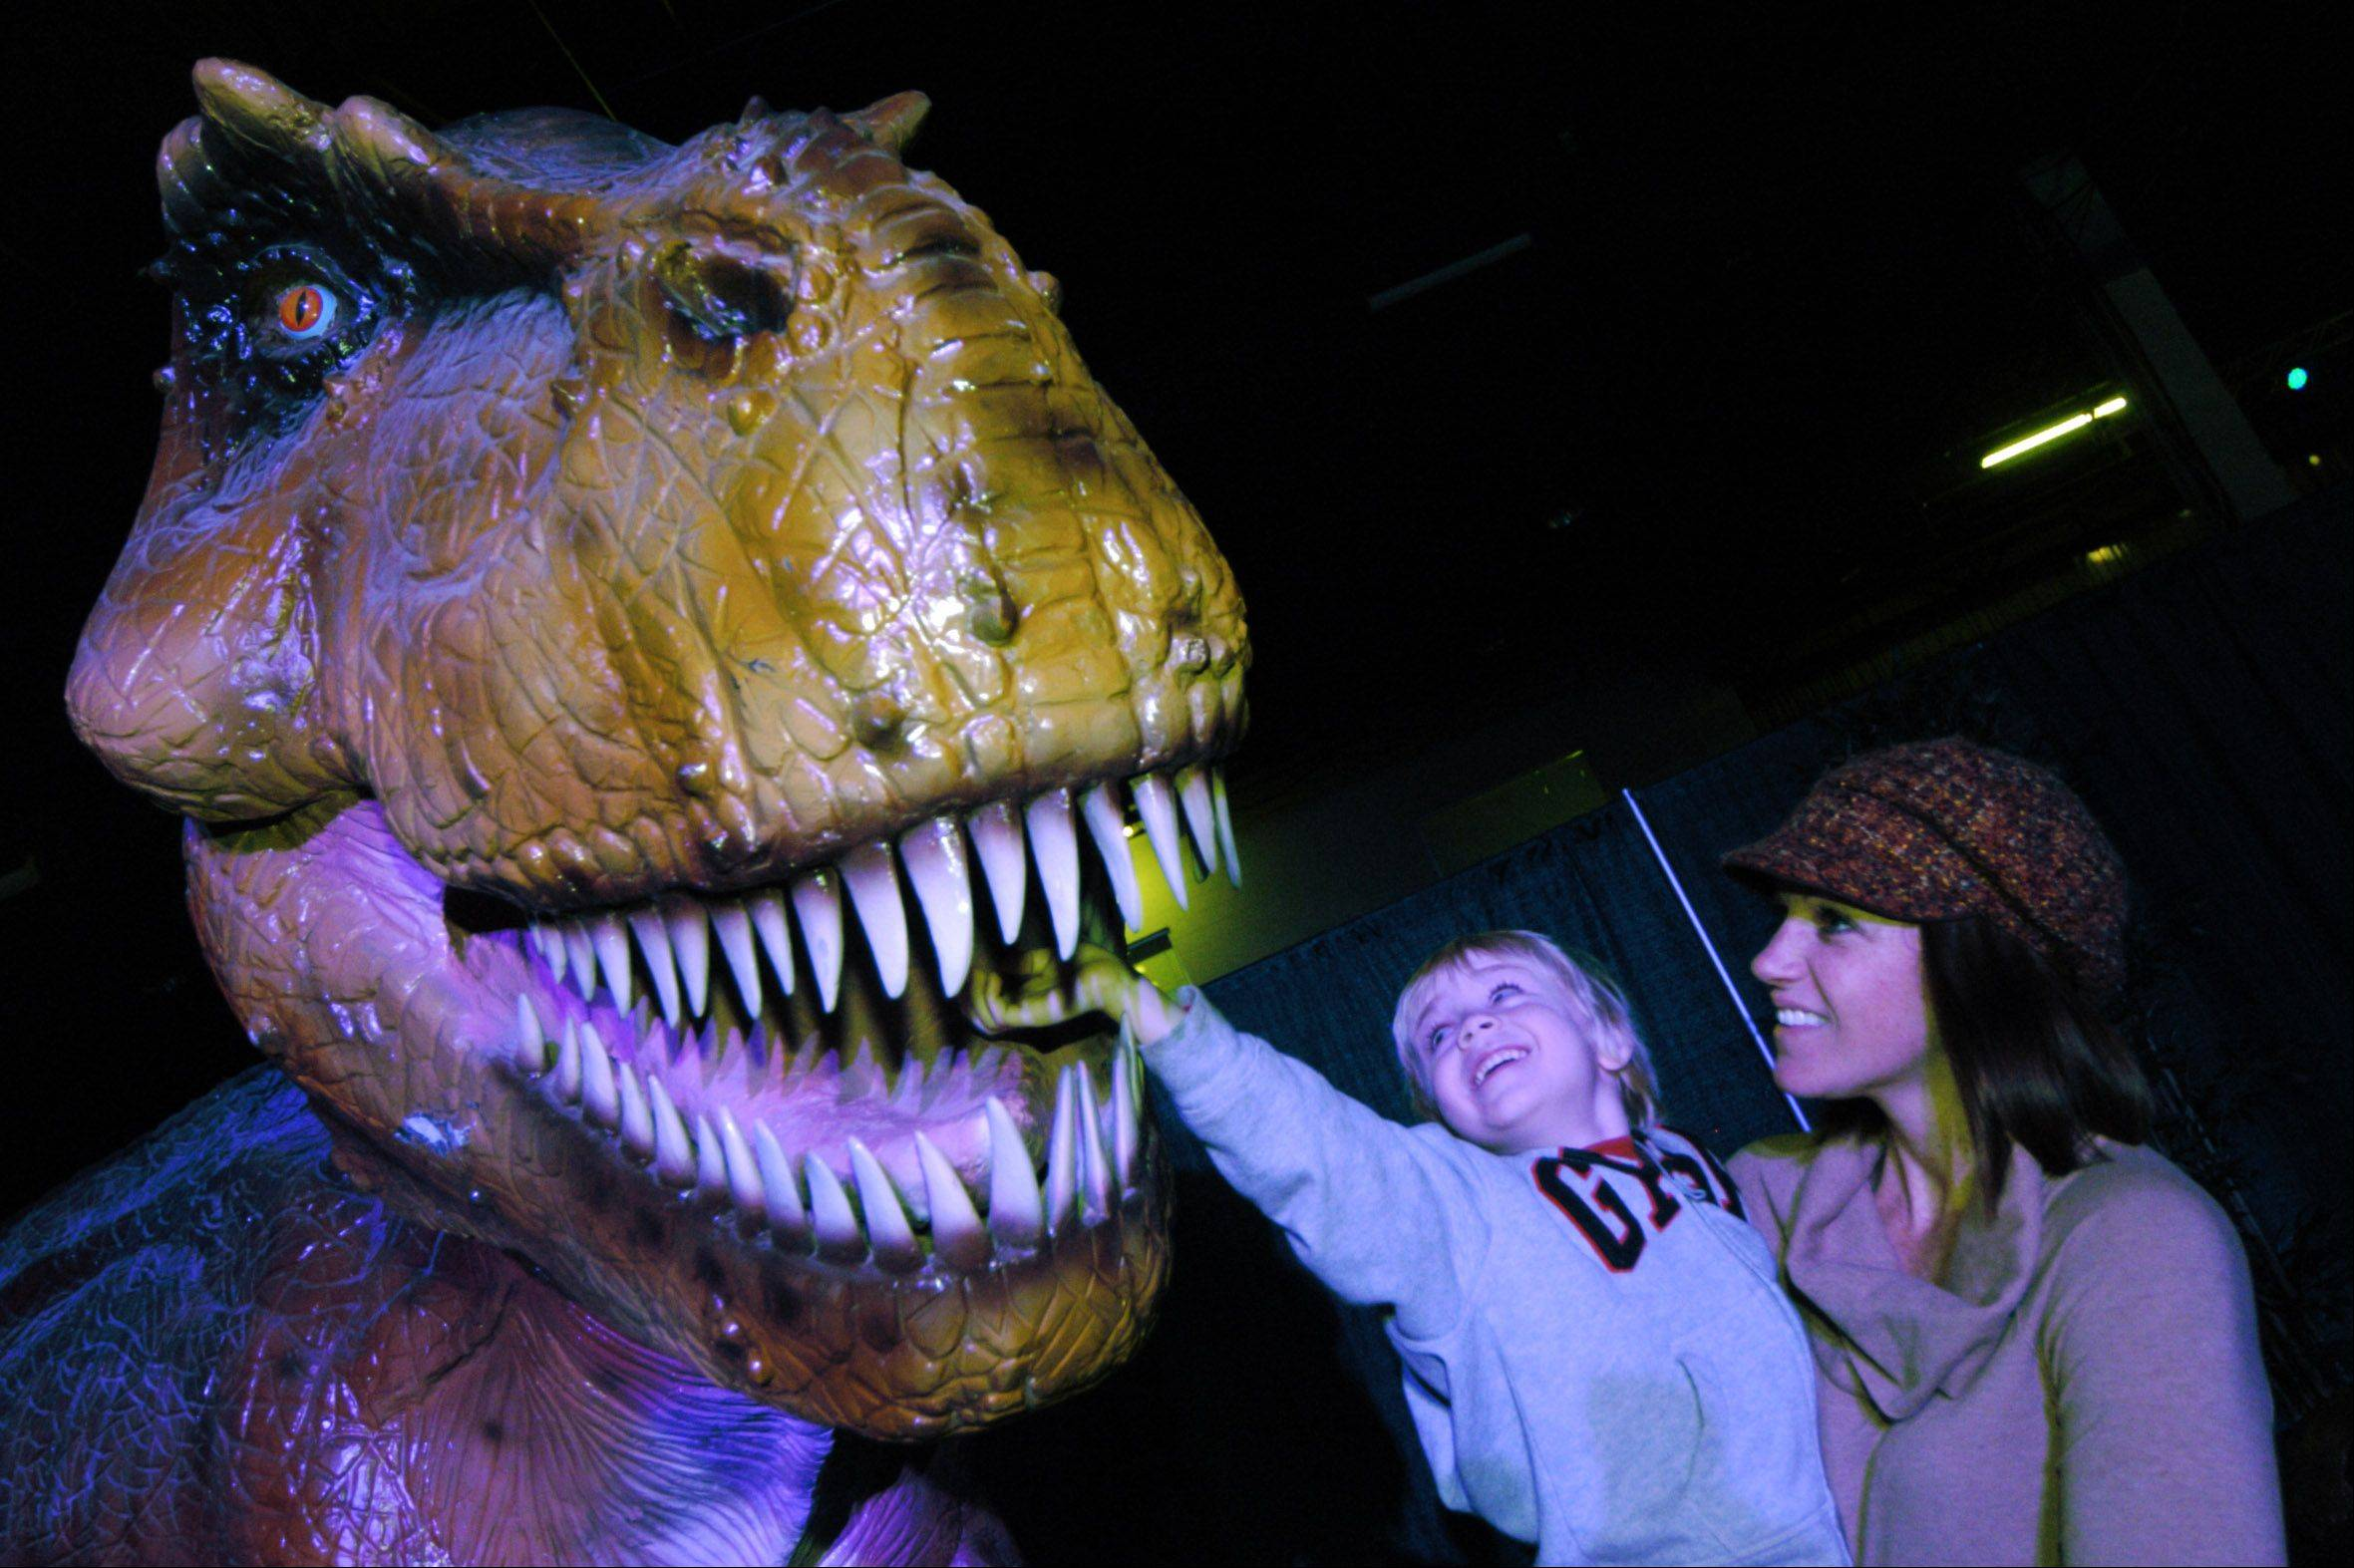 """Discover the Dinosaurs"" returns to the Donald E. Stephens Convention Center in Rosemont from Friday through Monday, Jan. 17-20."